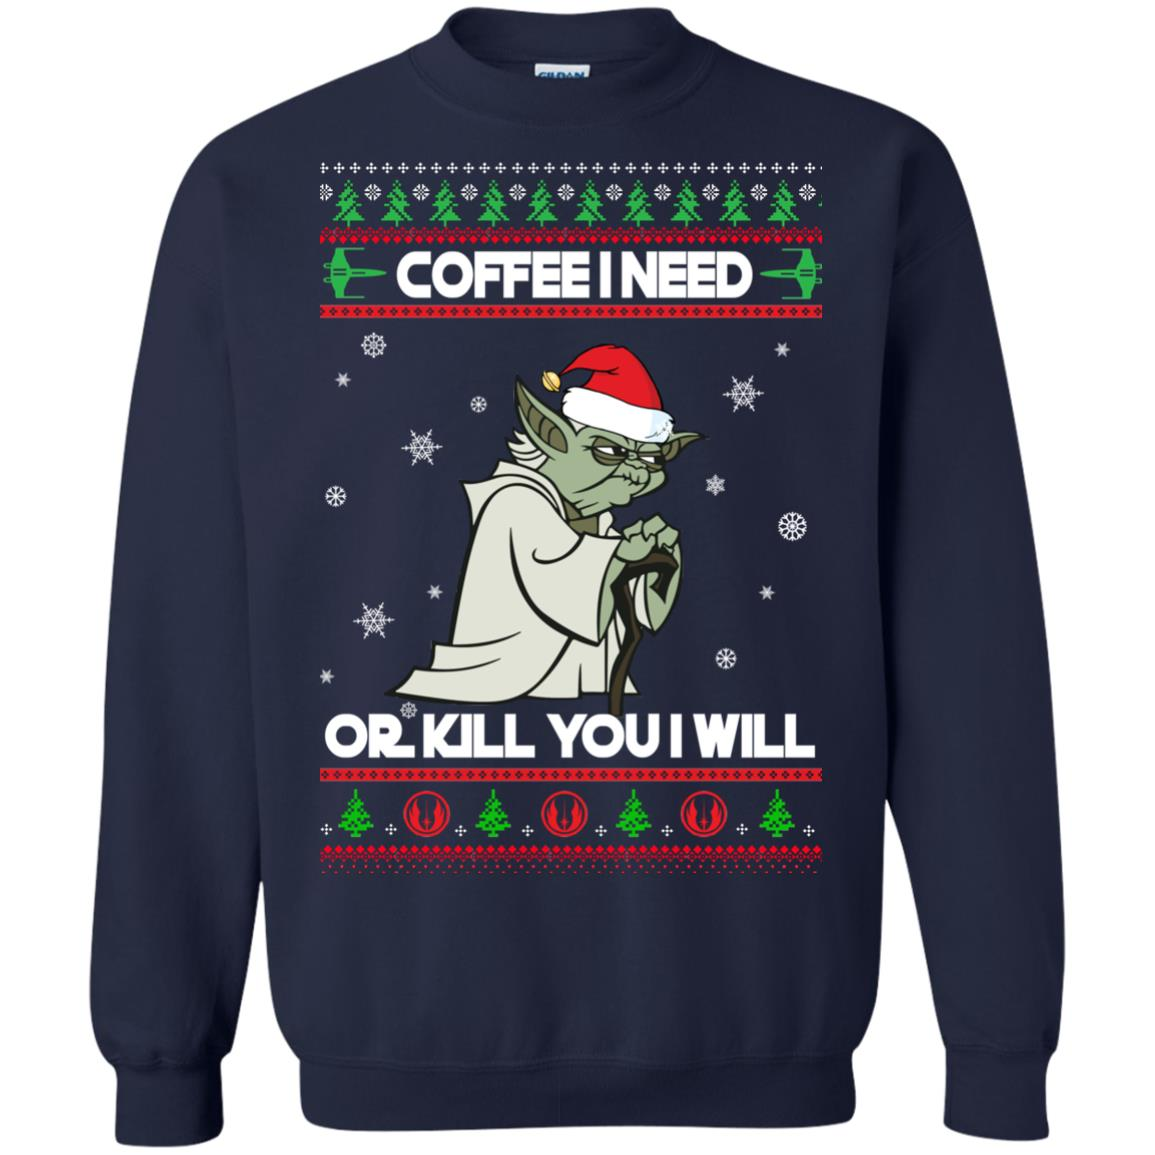 image 1243px Star Wars Yoda Sweater: Coffee I Need Or Kill You I Will Christmas Sweater